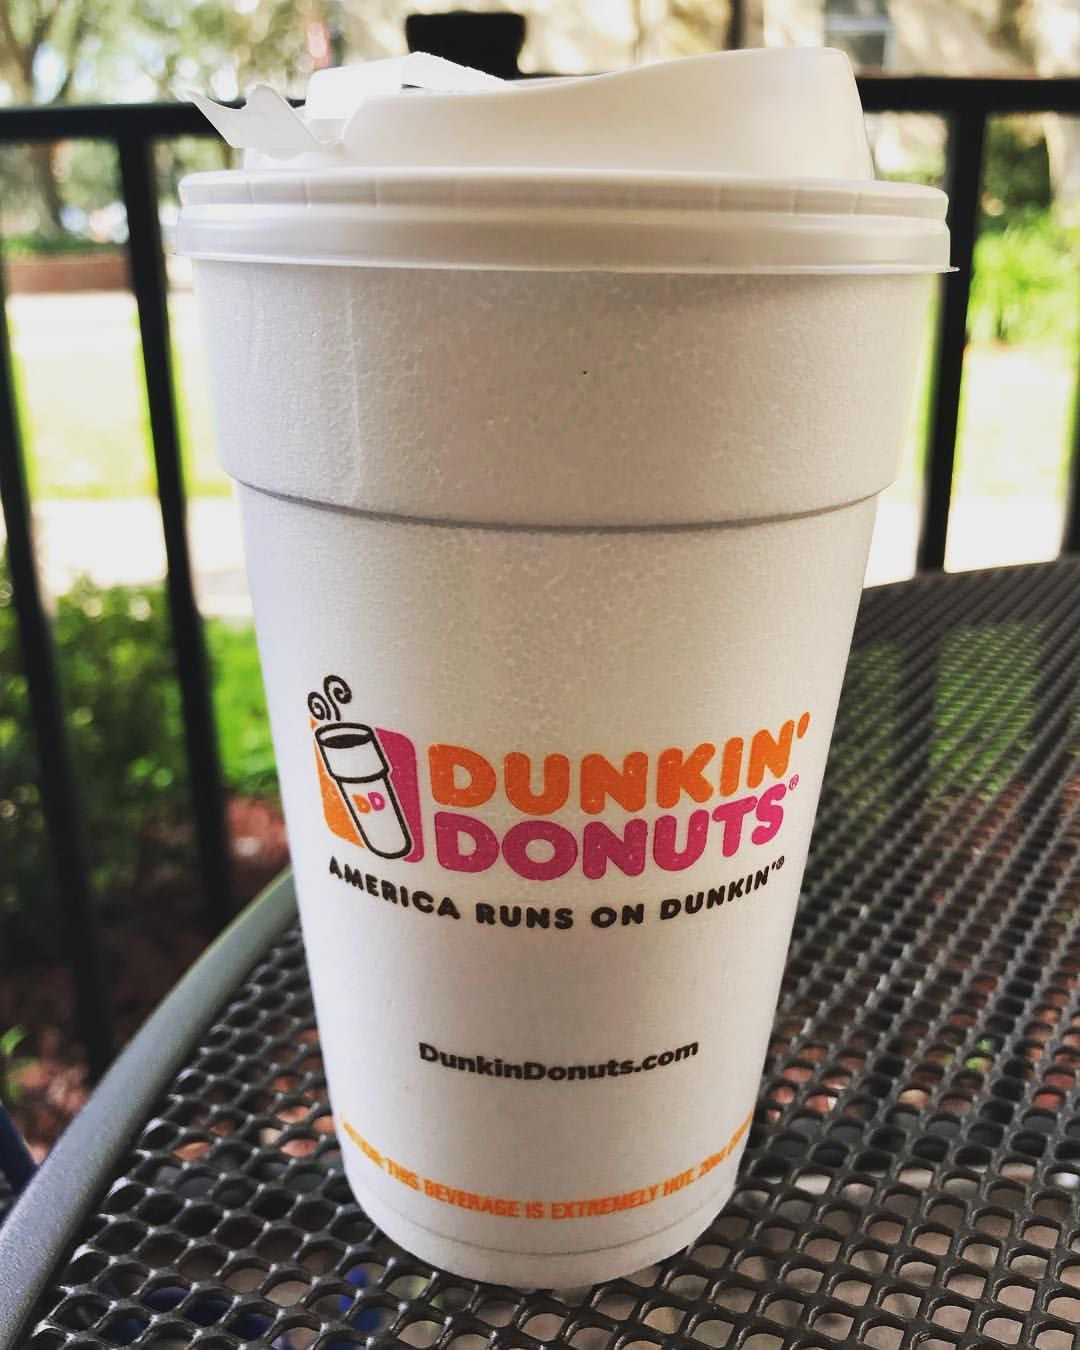 Sarah runs on Dunkin. Happy Wednesday! lifeazsarahlou